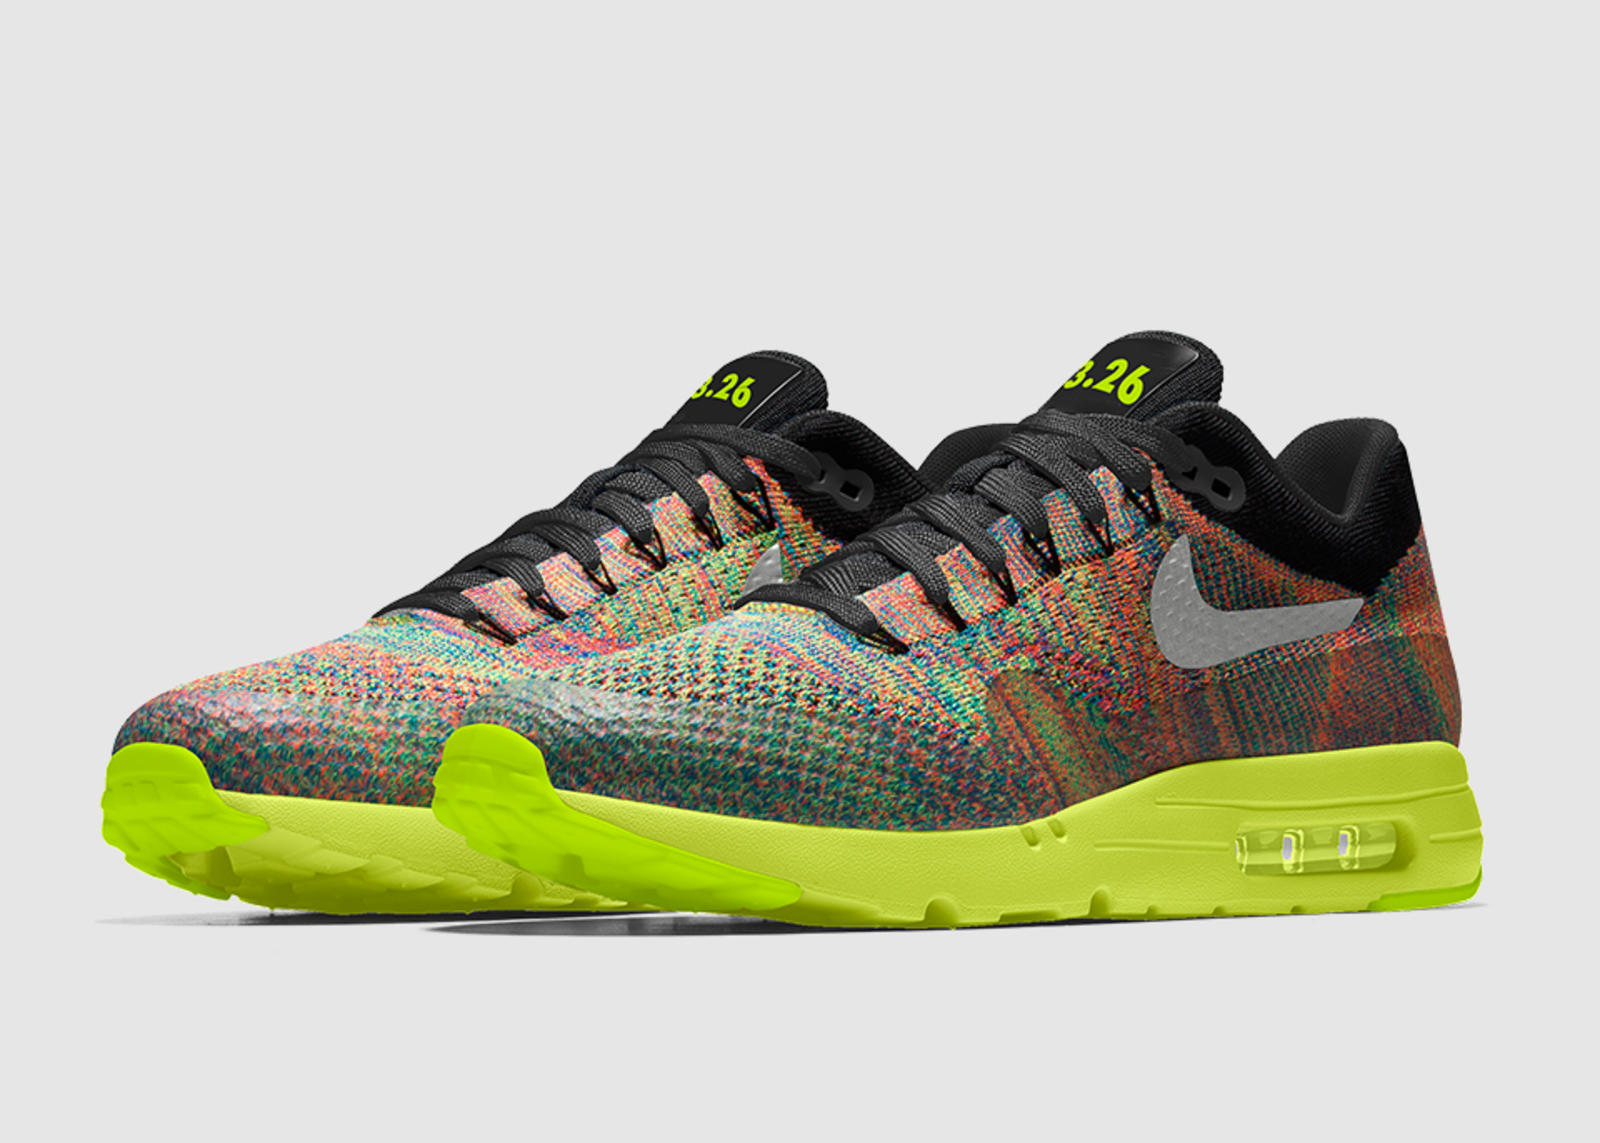 ebd13af45e9c85 The NikeID Air Max Day 2017 drops will be available on March 26 at select Air  Max Day events and online.